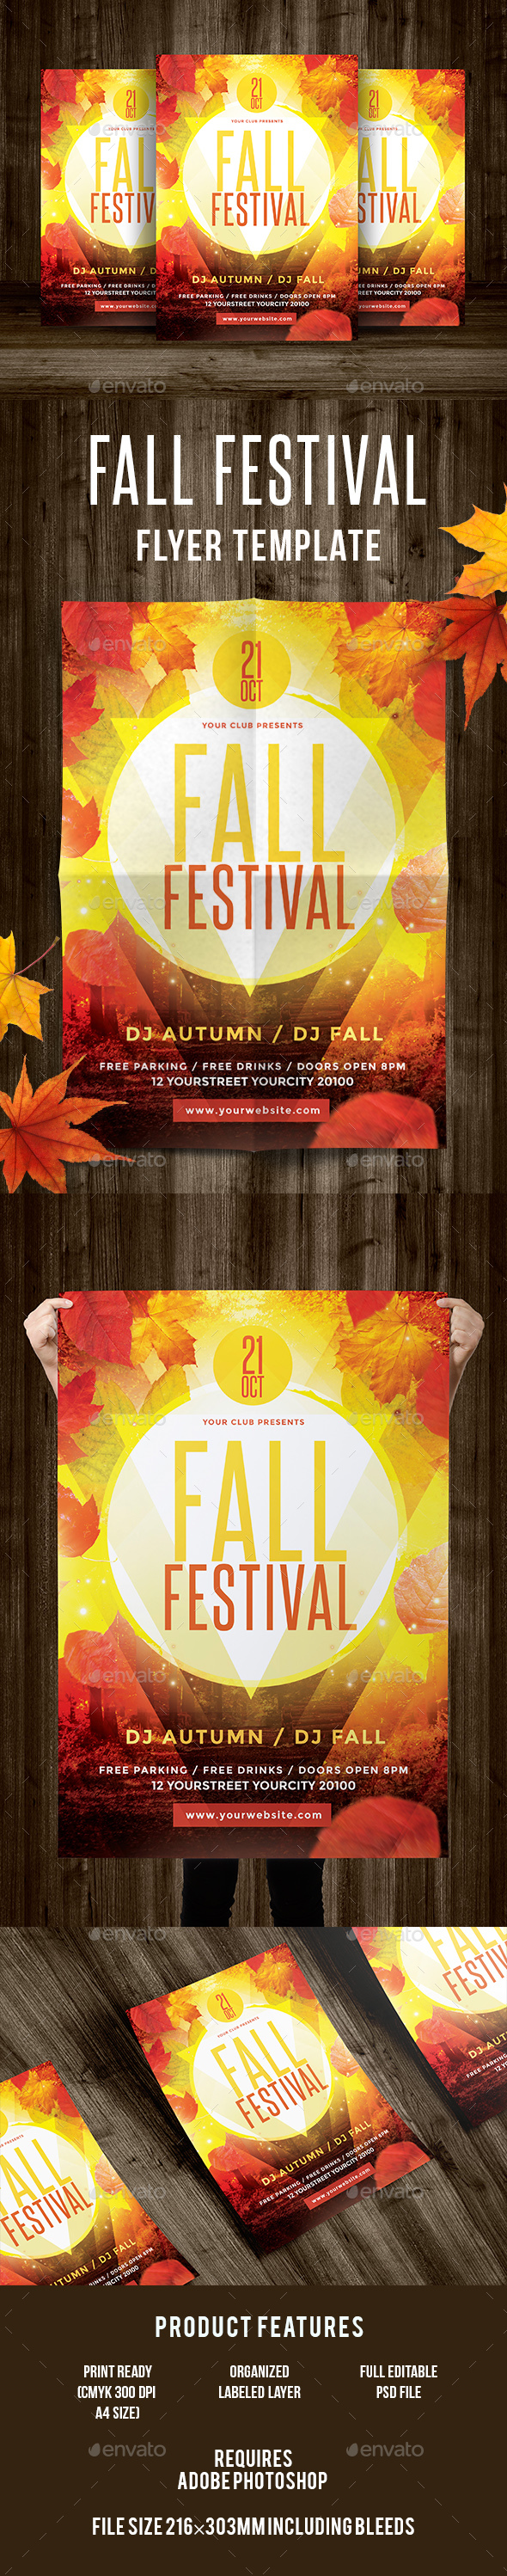 Fall Festival Flyer - Events Flyers